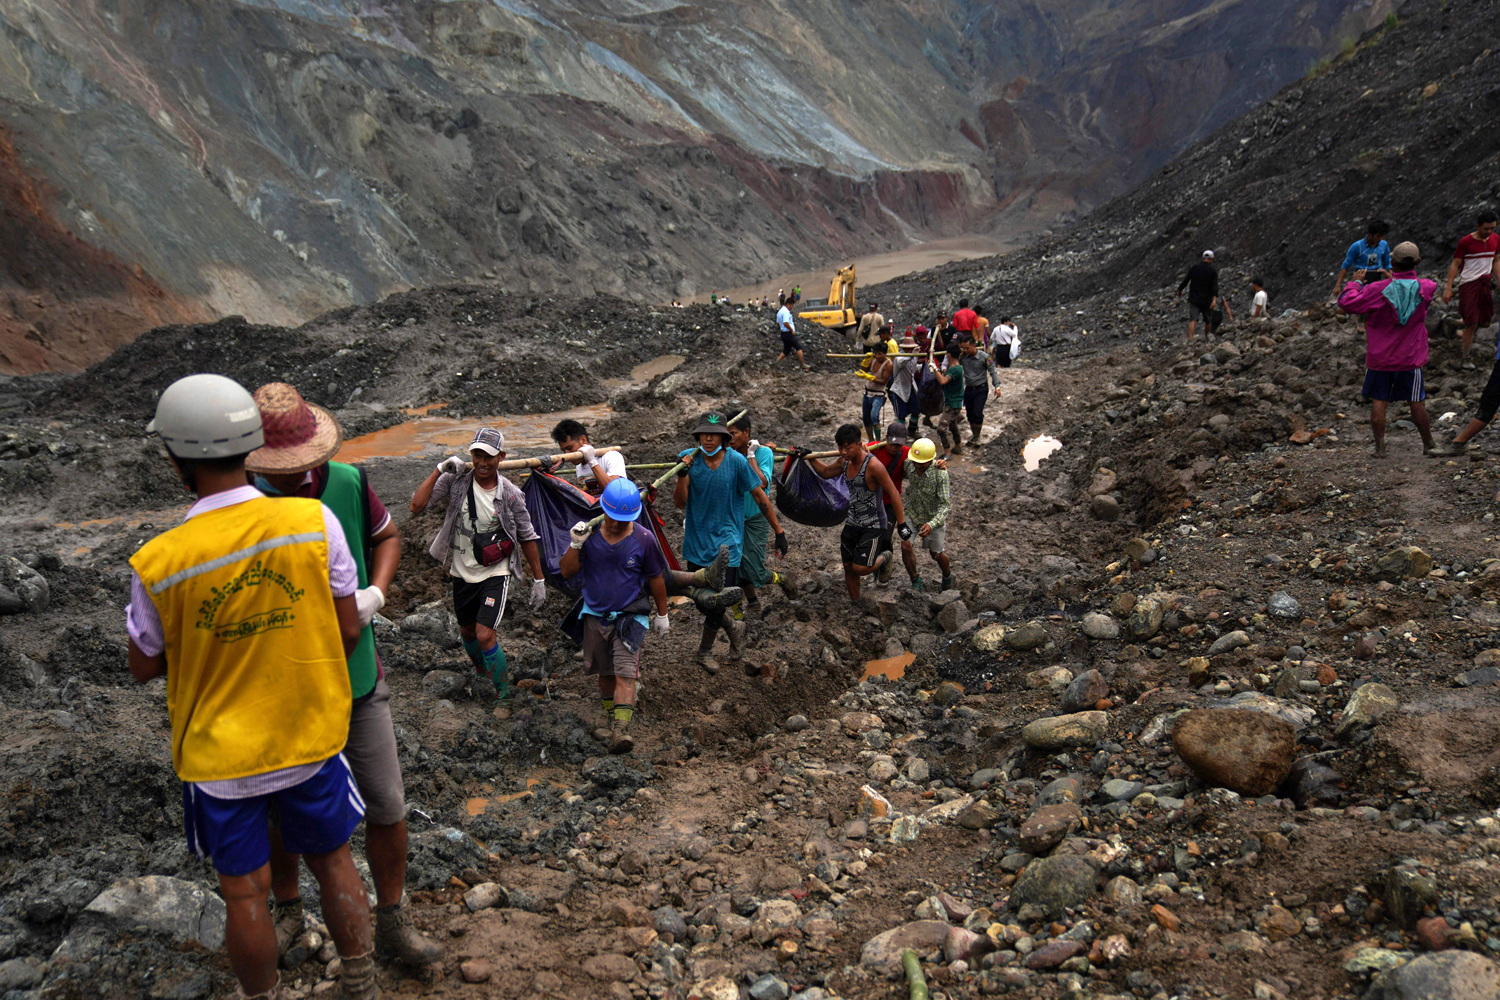 Rescuers recover bodies near the landslide area in the jade mining site in Hpakhant